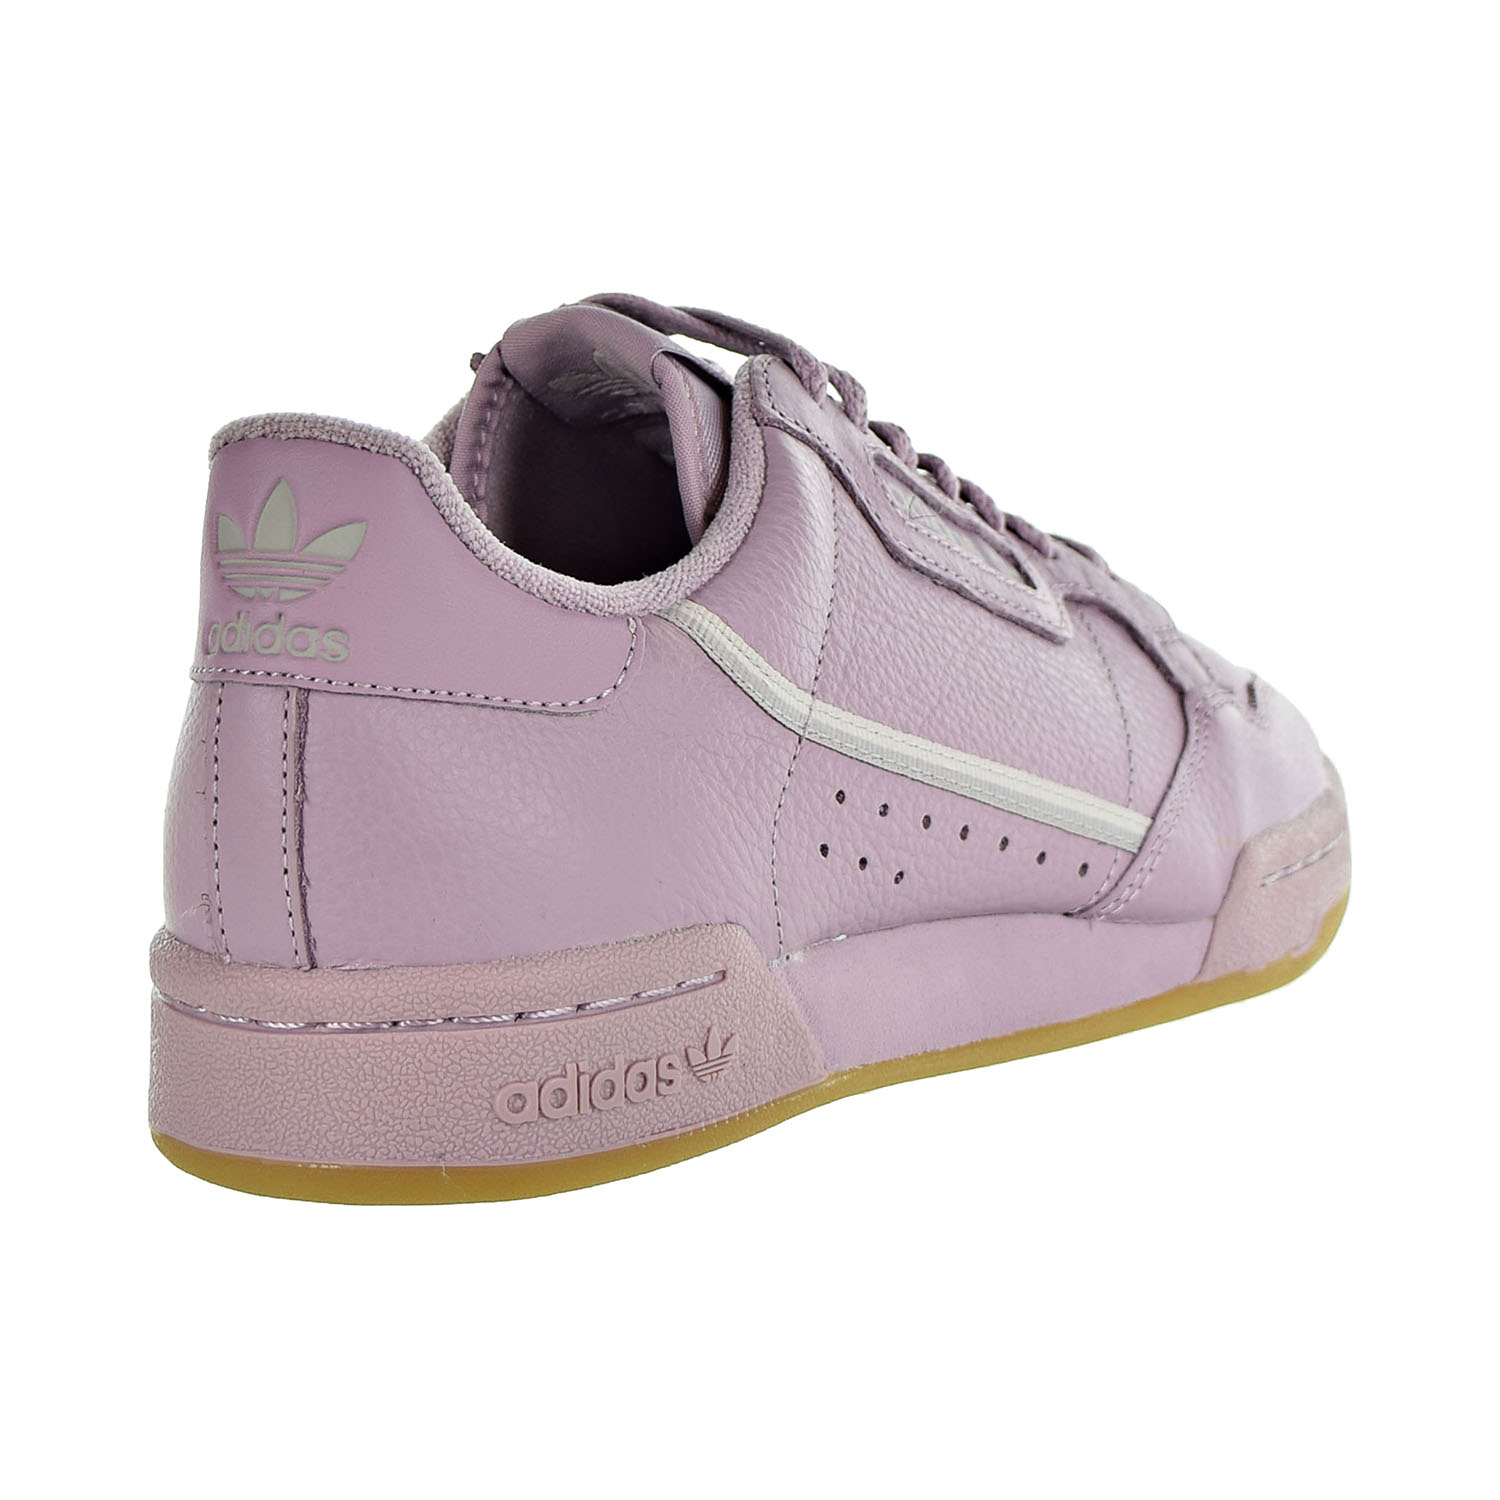 512960ca2a15 Adidas Continental 80 Women s Shoes Soft Vision Grey One Grey Two g27719